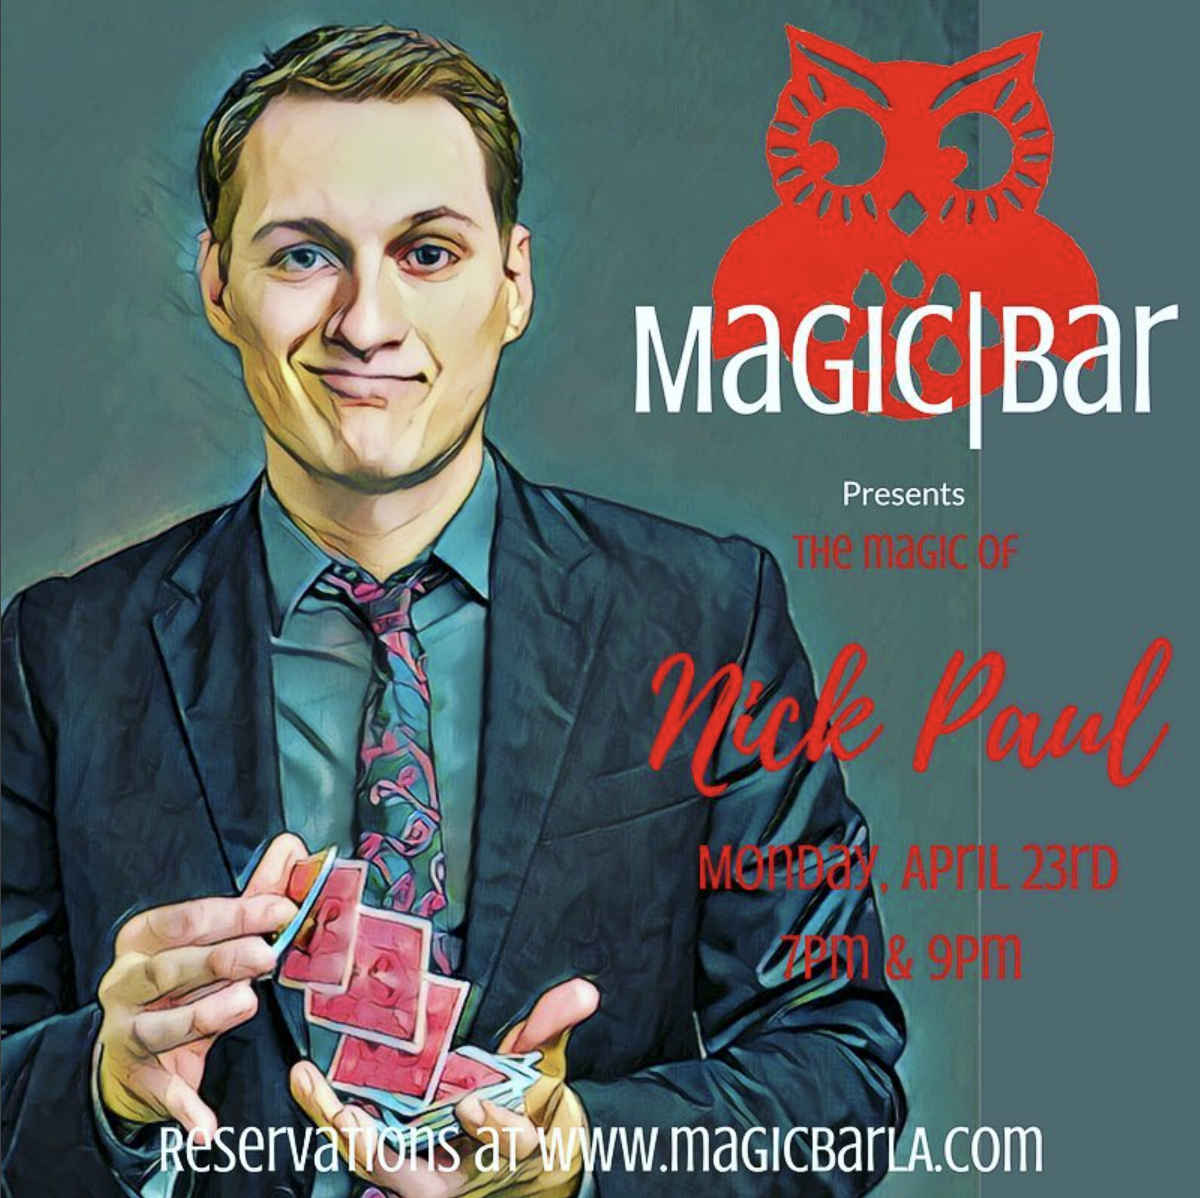 Nick Paul performs at Magic Bar LA in Encino, CA on June 16 and 17, 2019